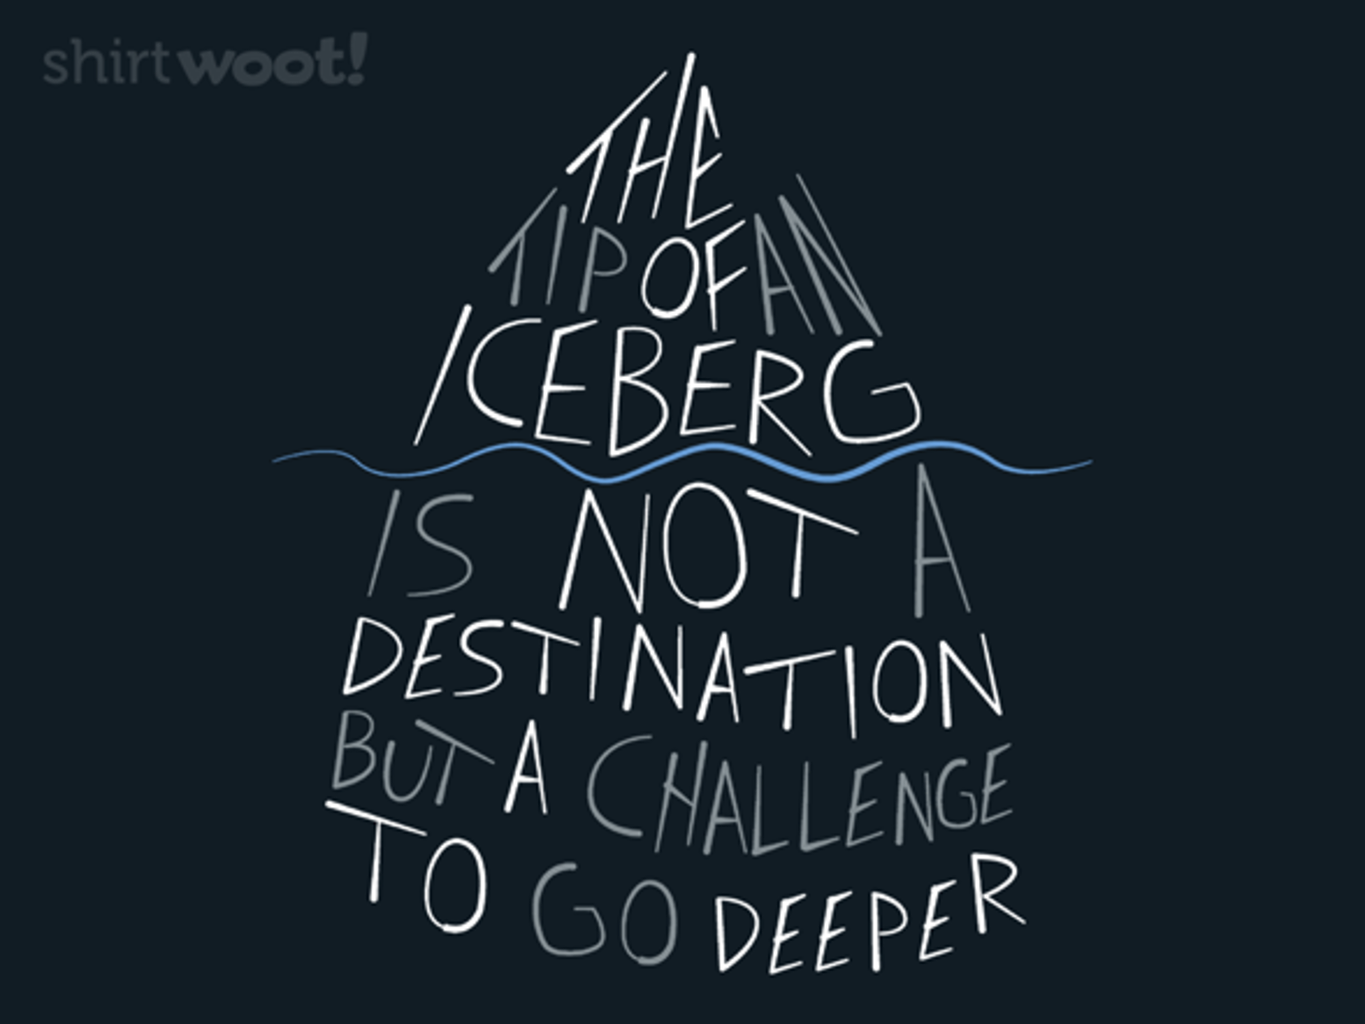 Woot!: Tip of an Iceberg